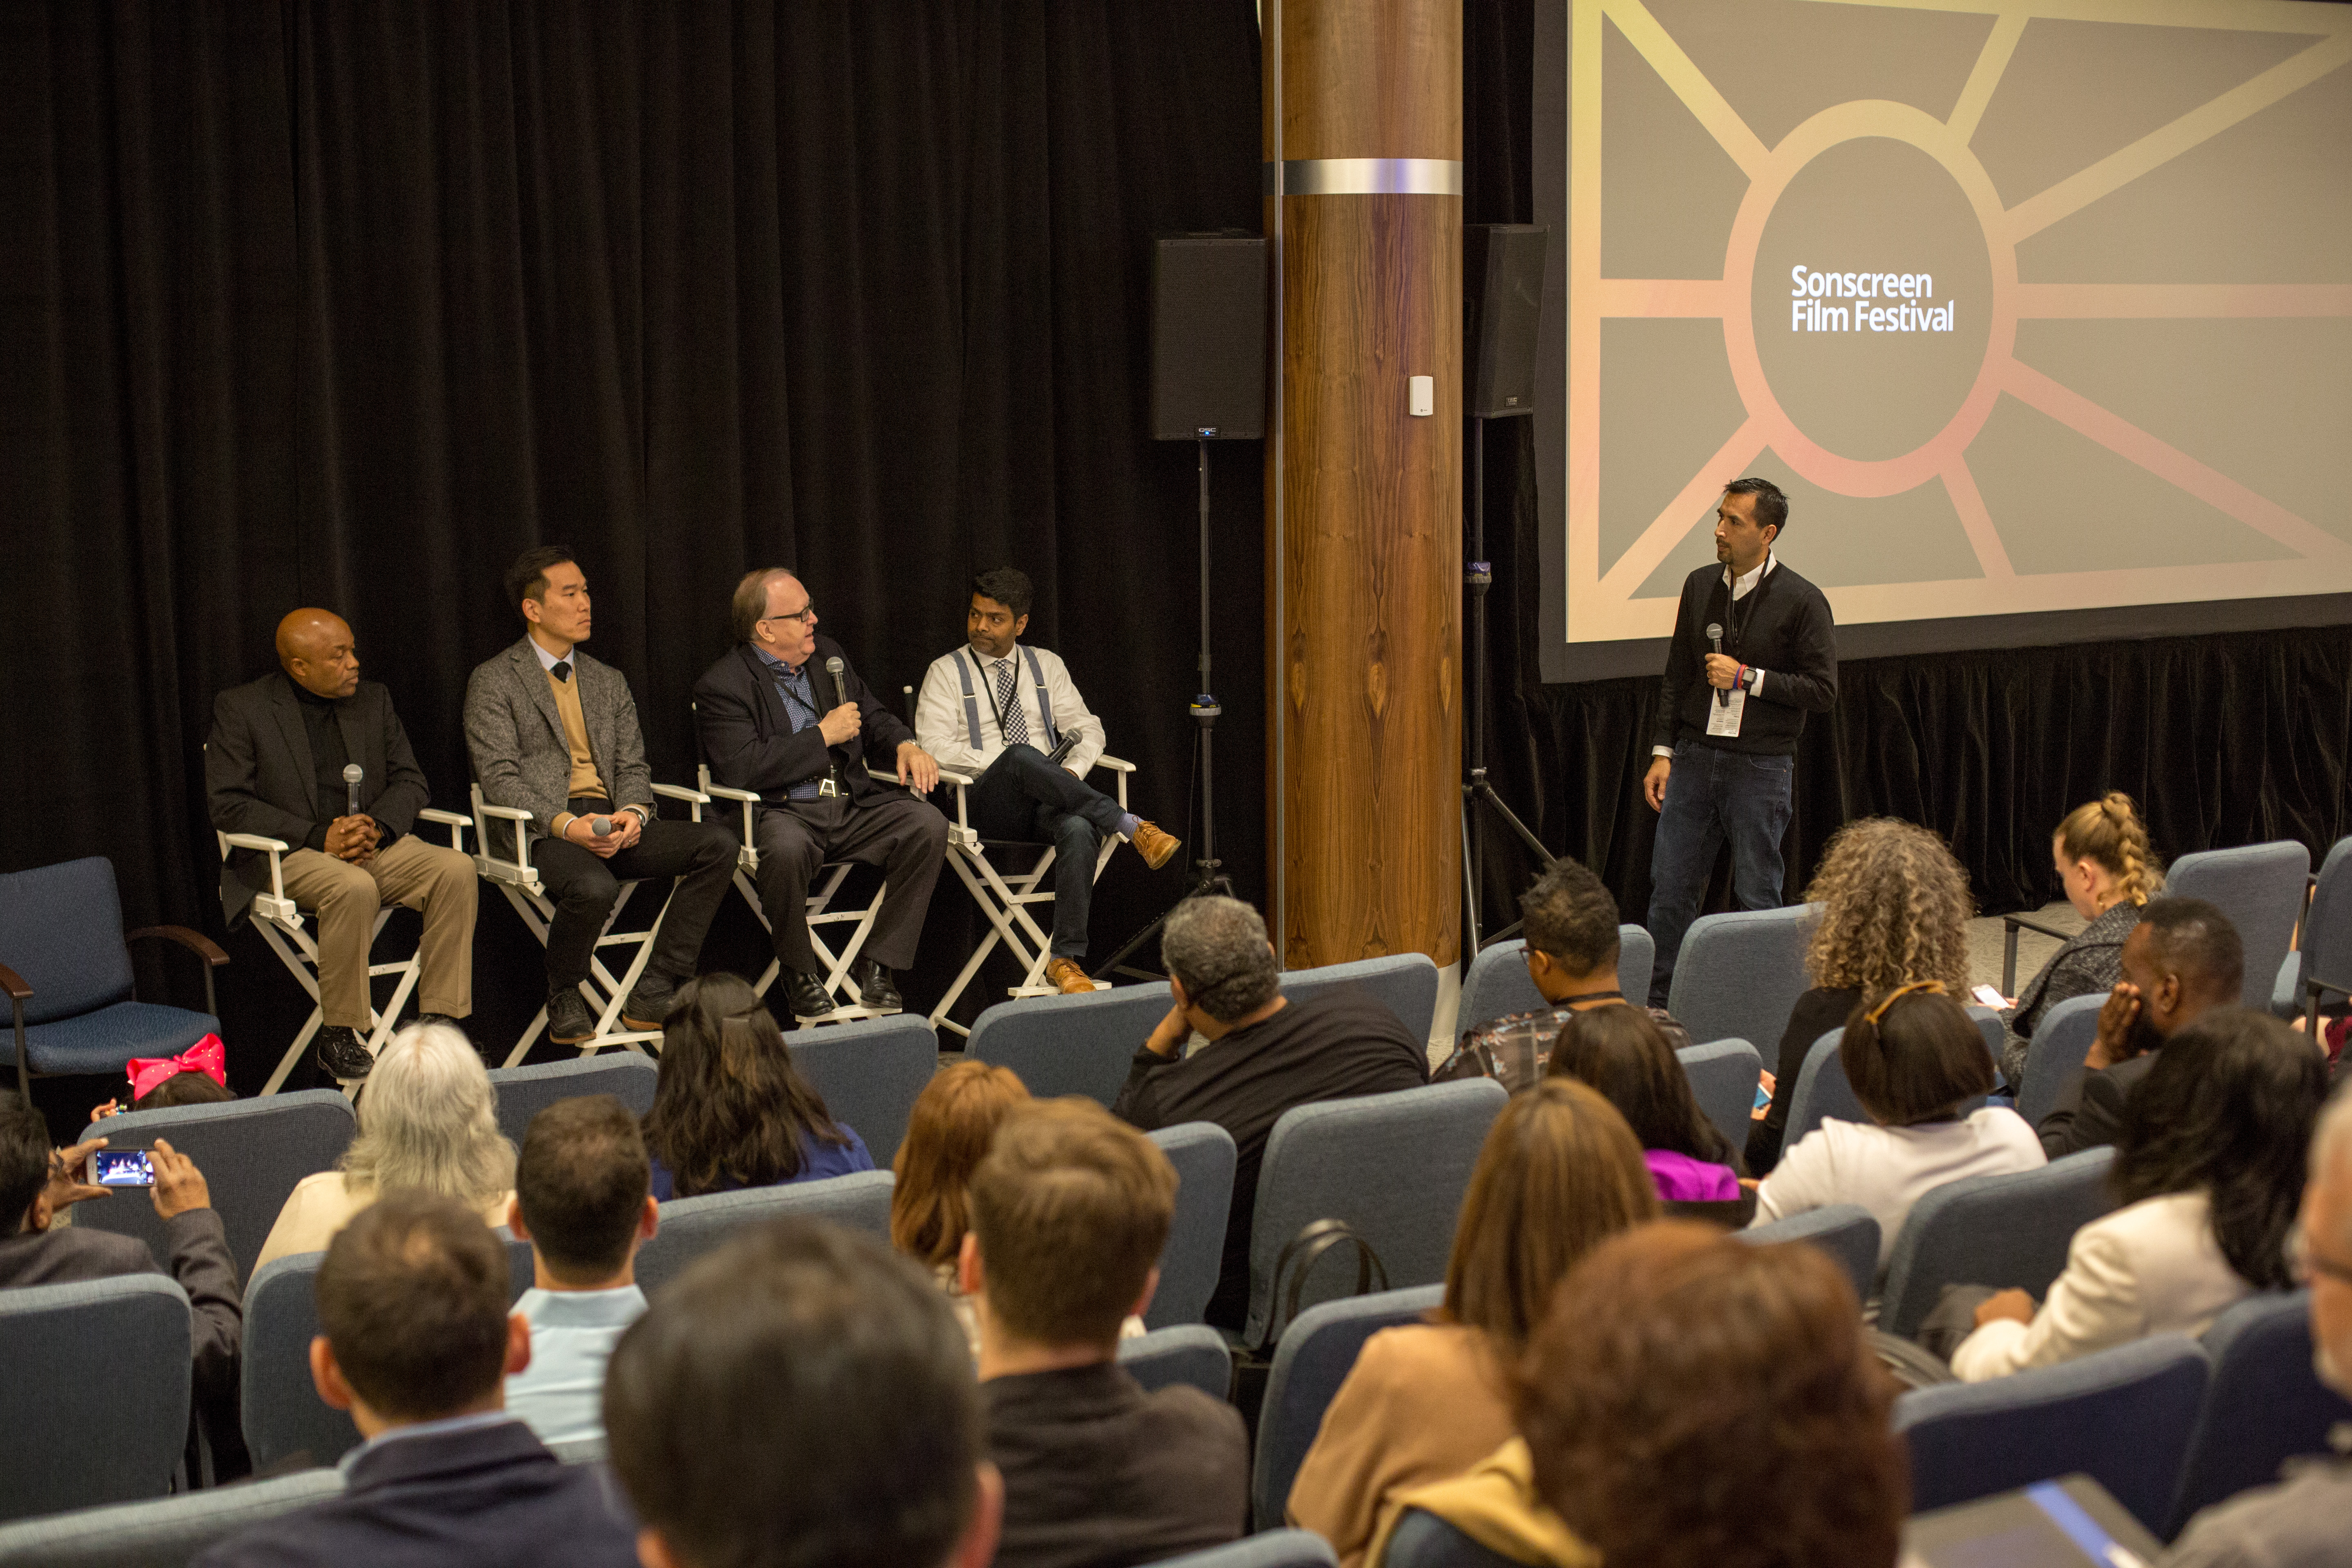 A panel of church leaders and film professors discuss the role of film in addressing social issues that challenge society and the church during the 2018 Sonscreen Film Festival. Photo by Pieter Damsteegt